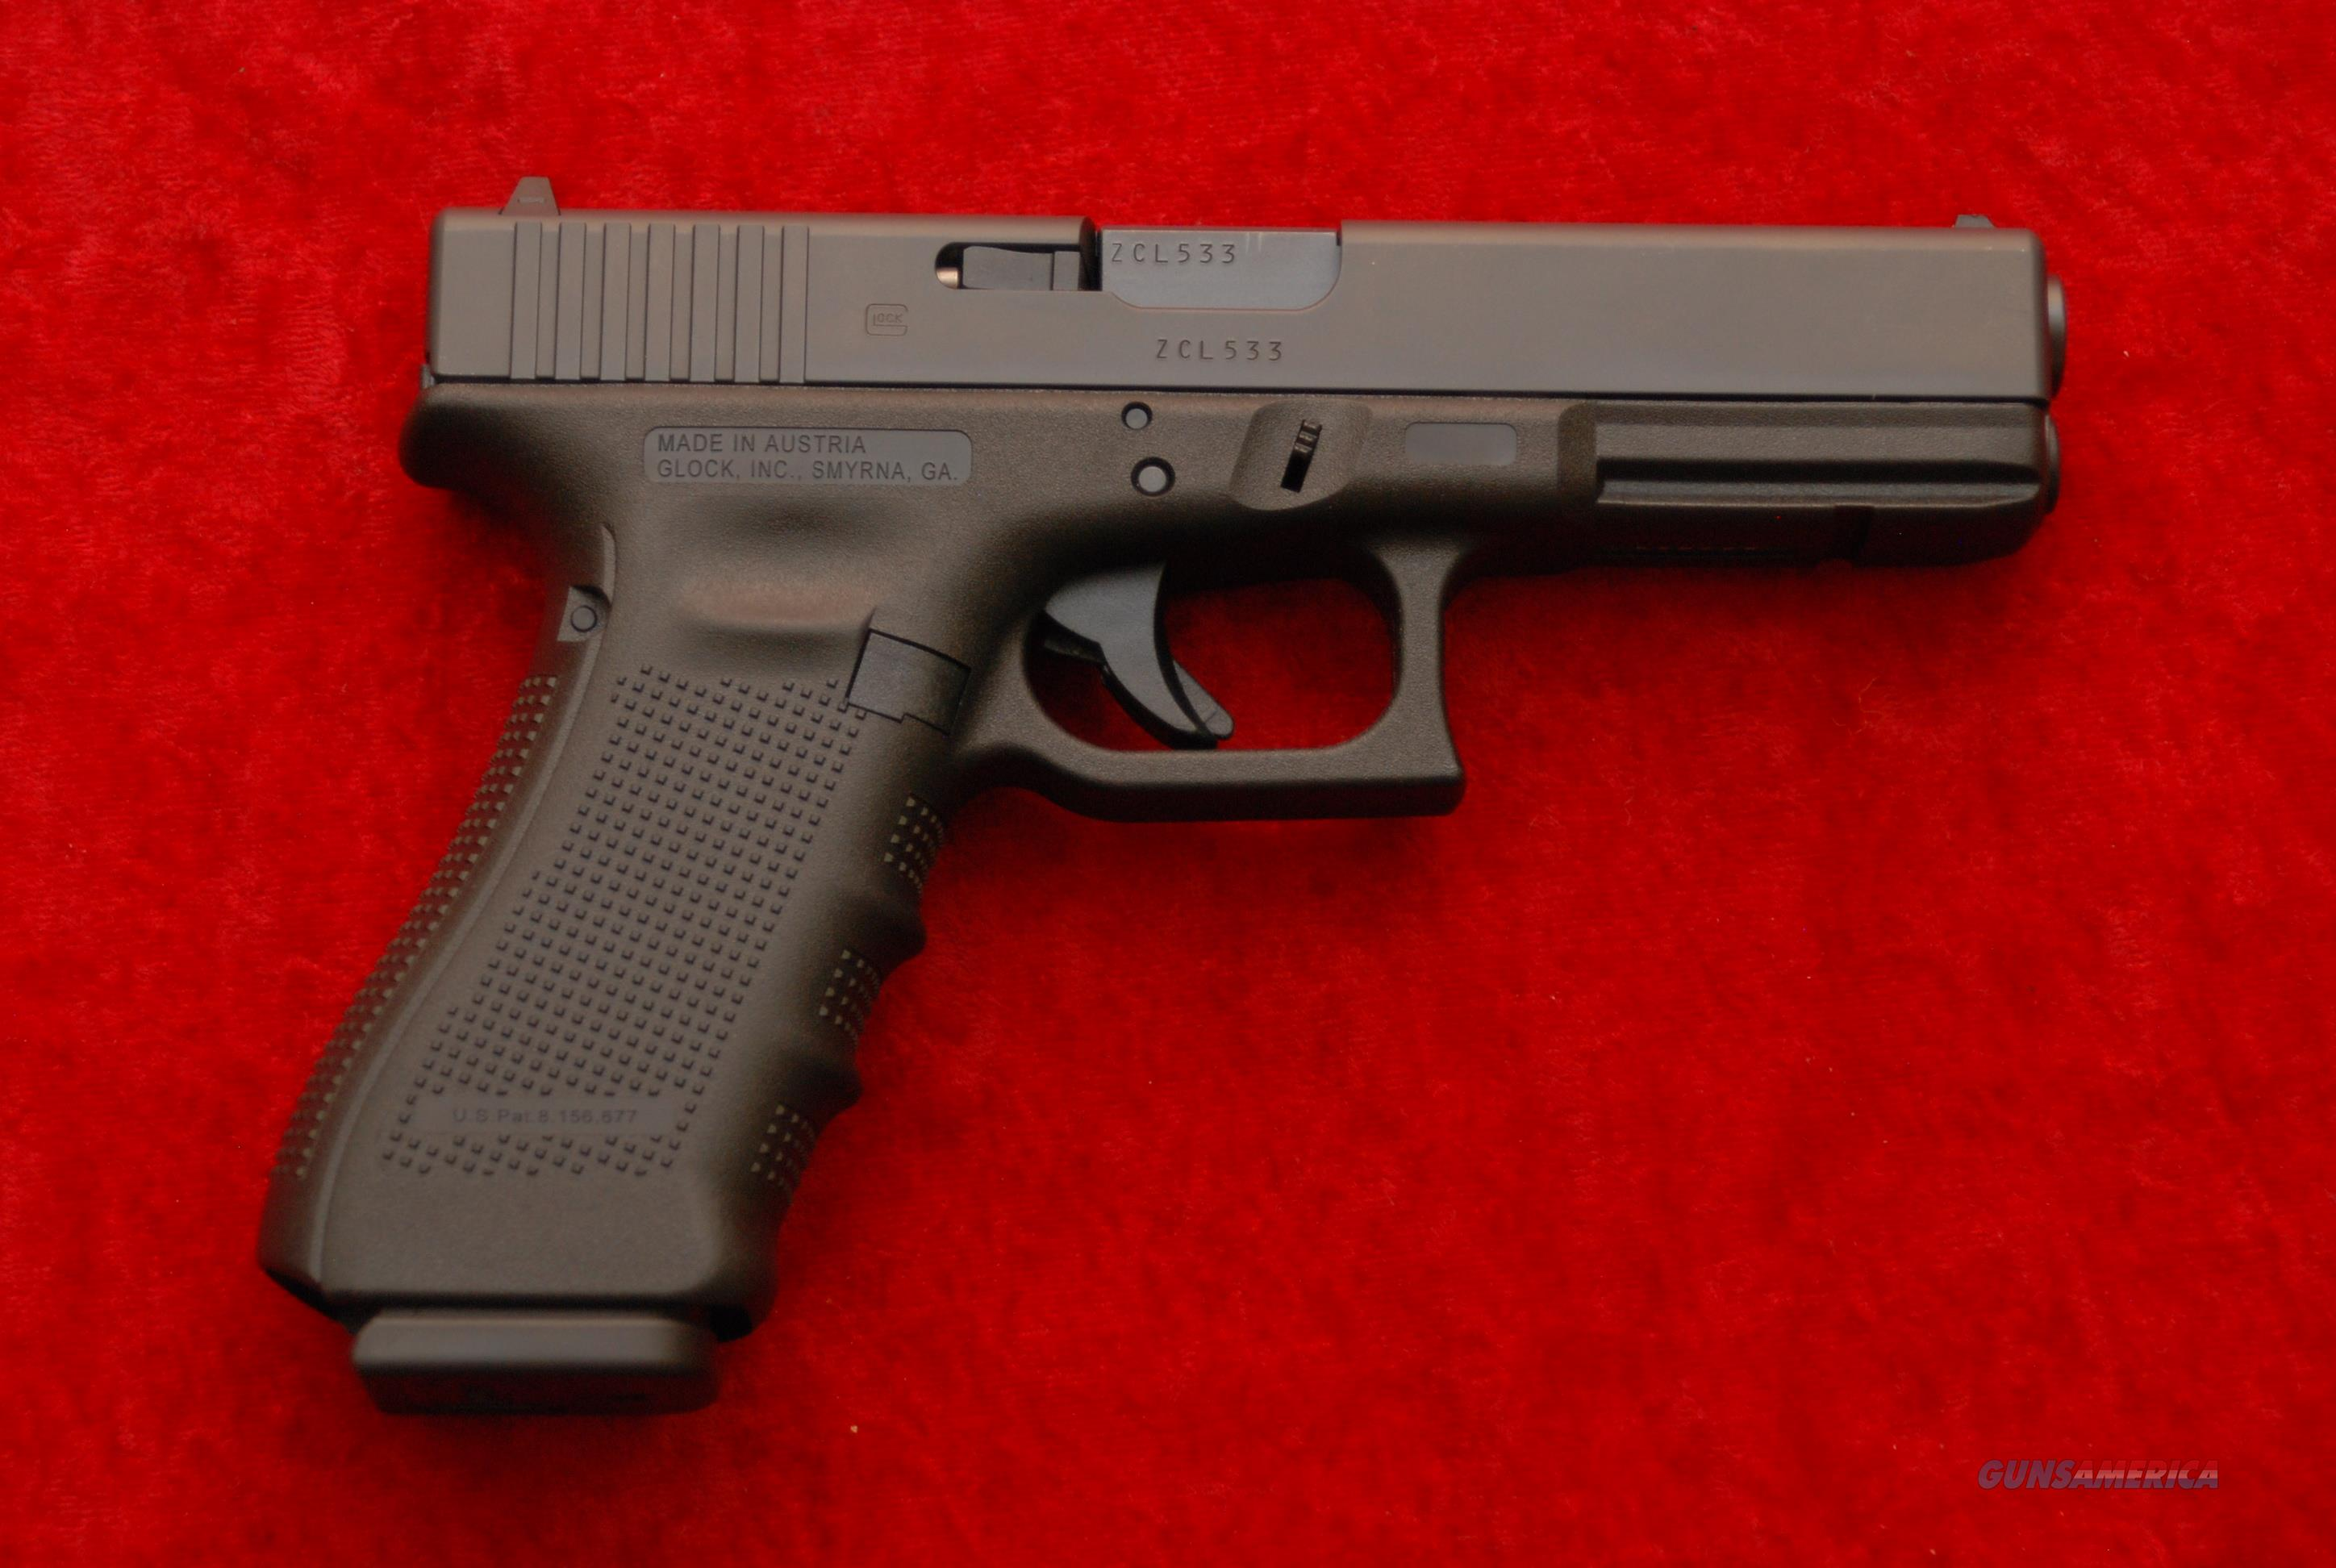 Glock 17 Gen 4 9mm for sale